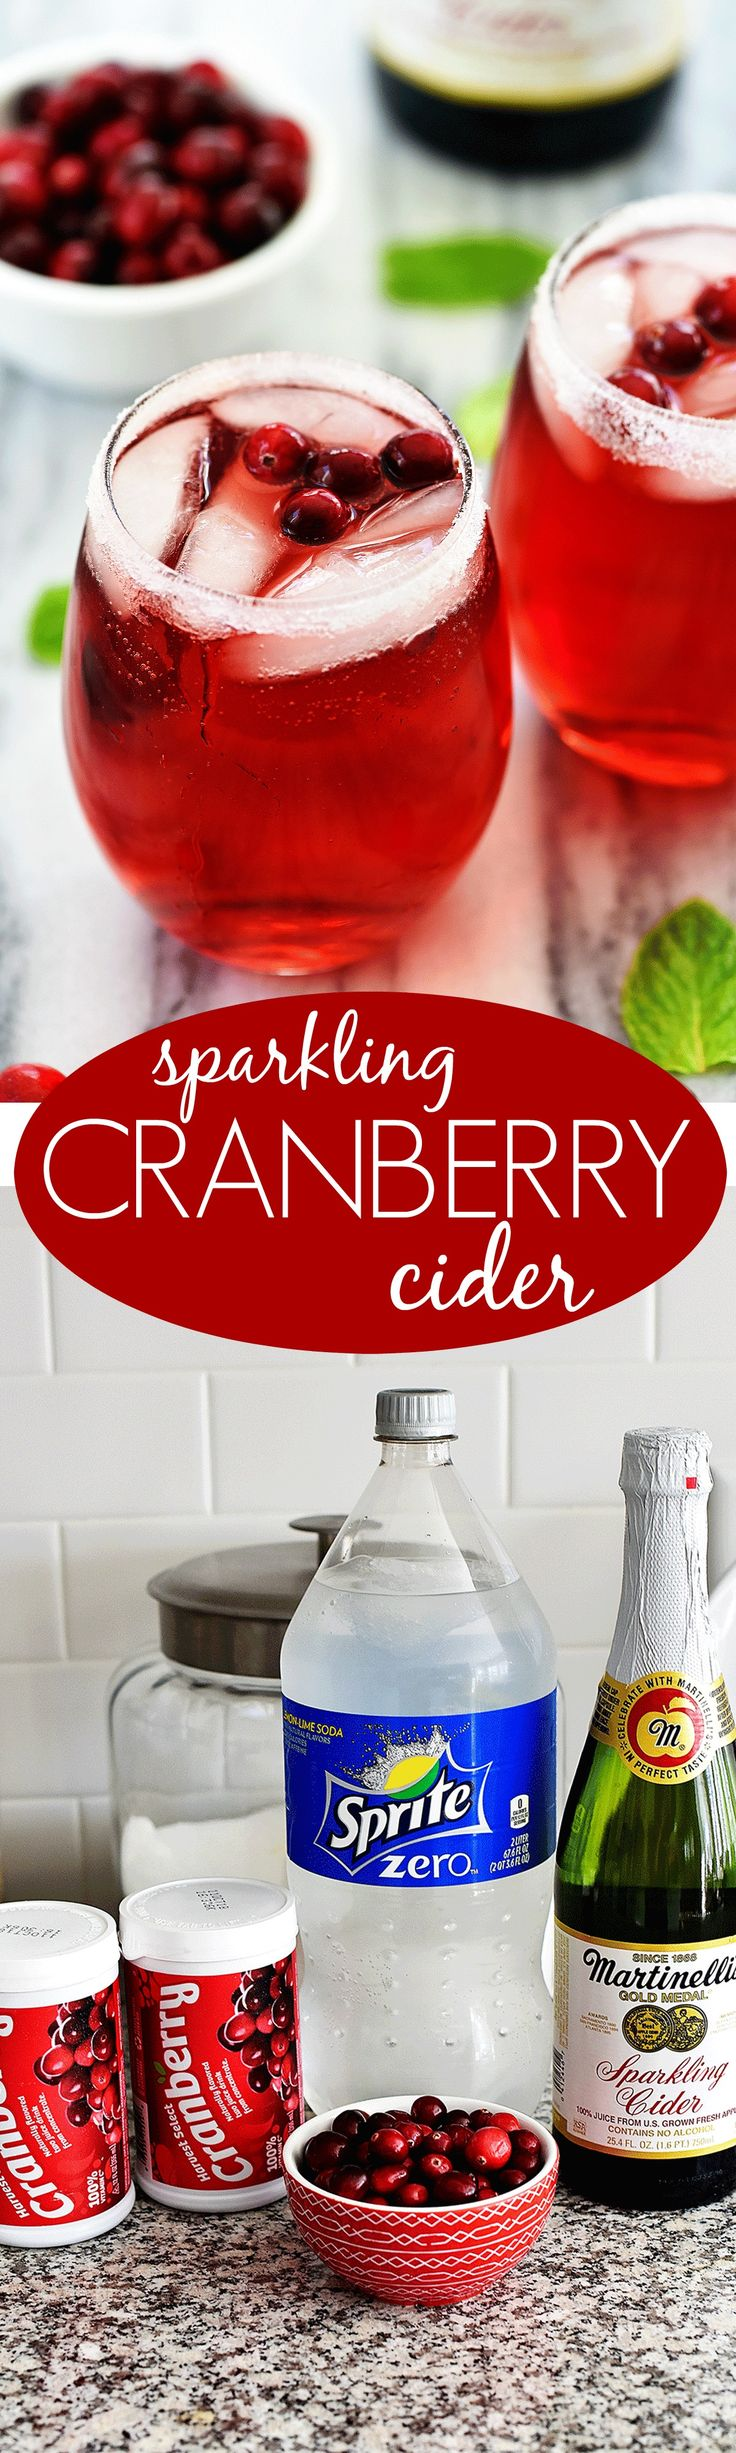 This drink is so easy to make and EVERYONE will love it! This is my kids favorite holiday drink!